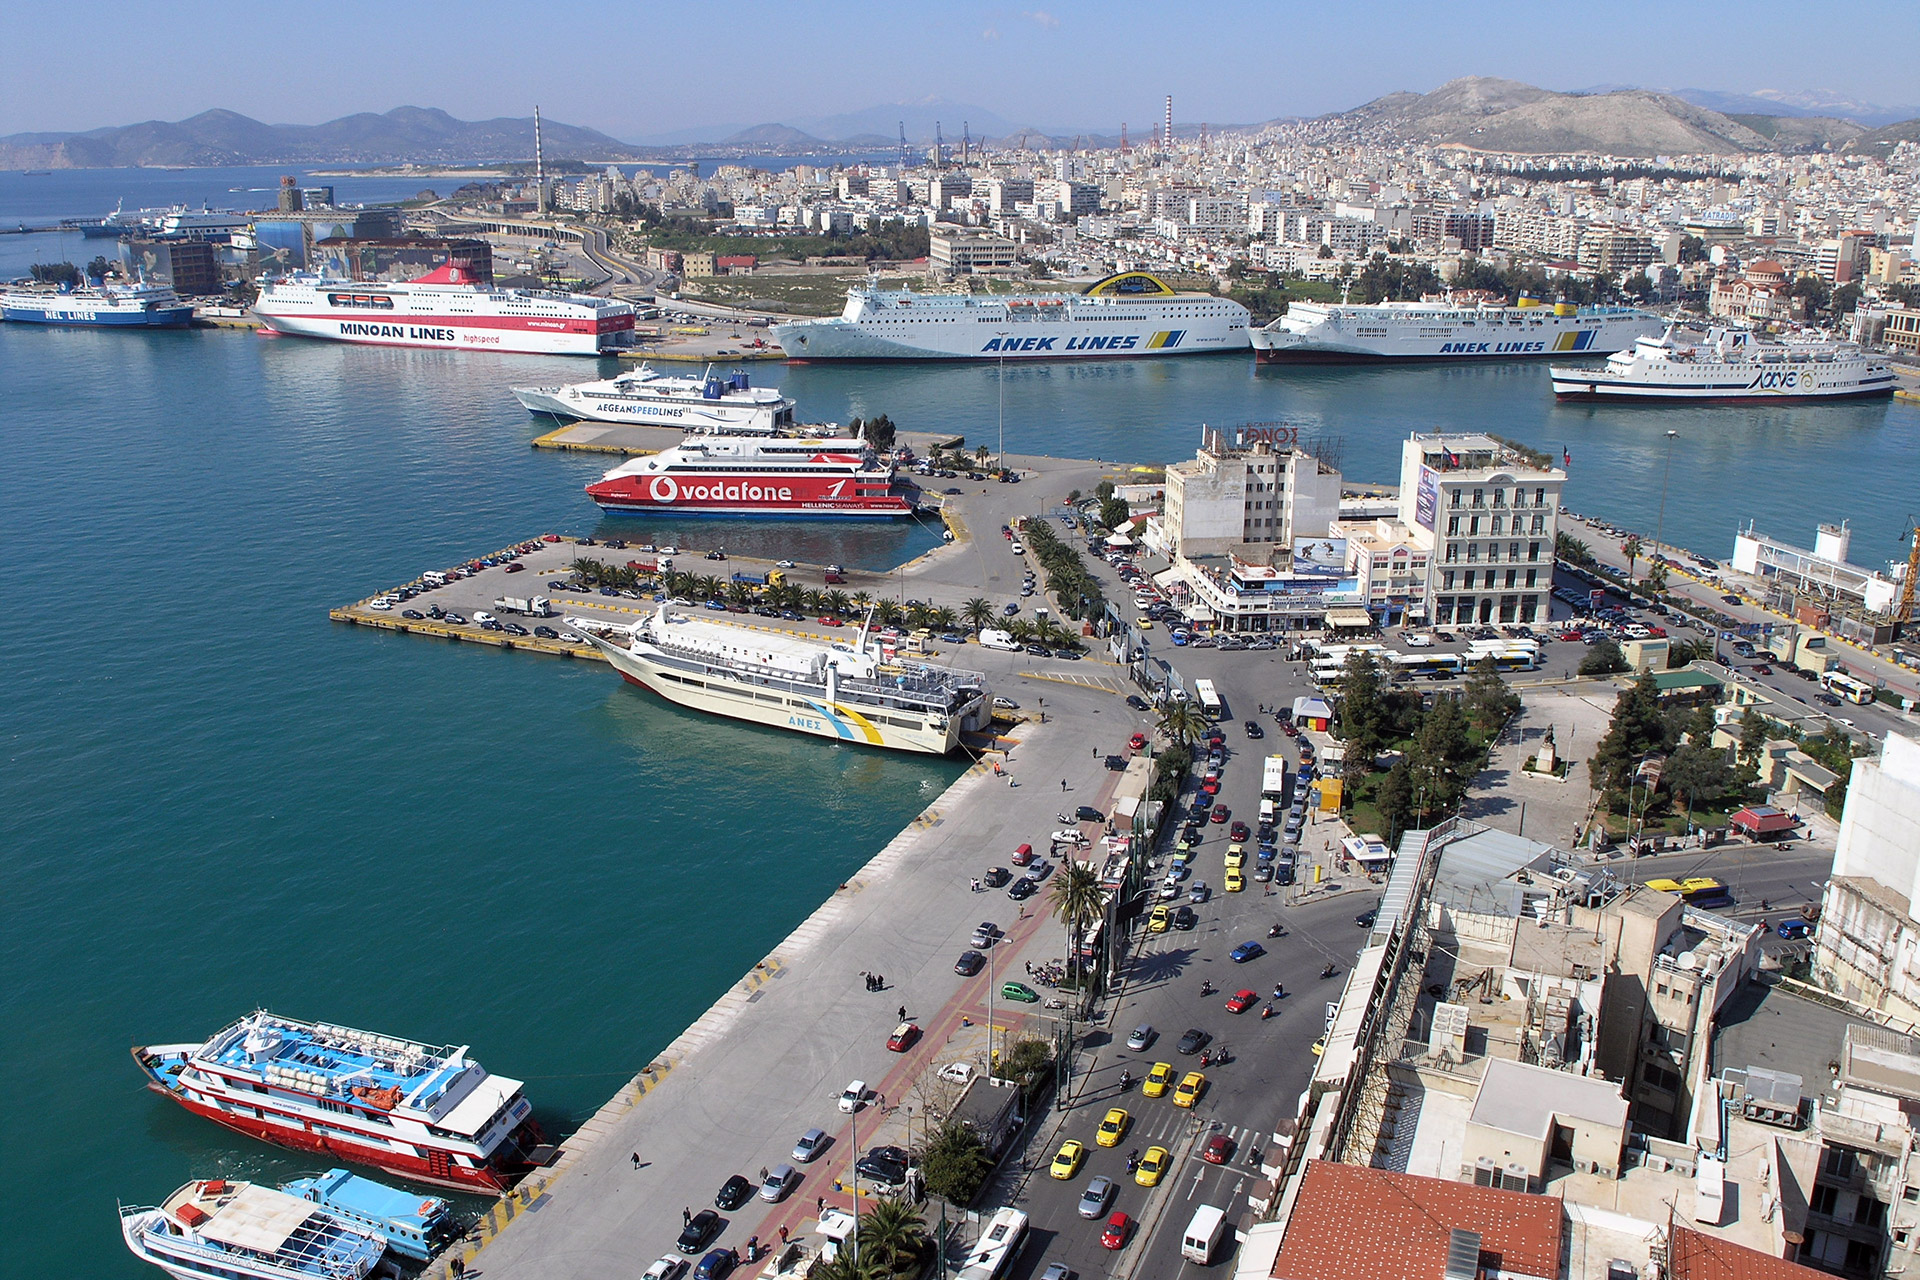 The Port of Piraeus